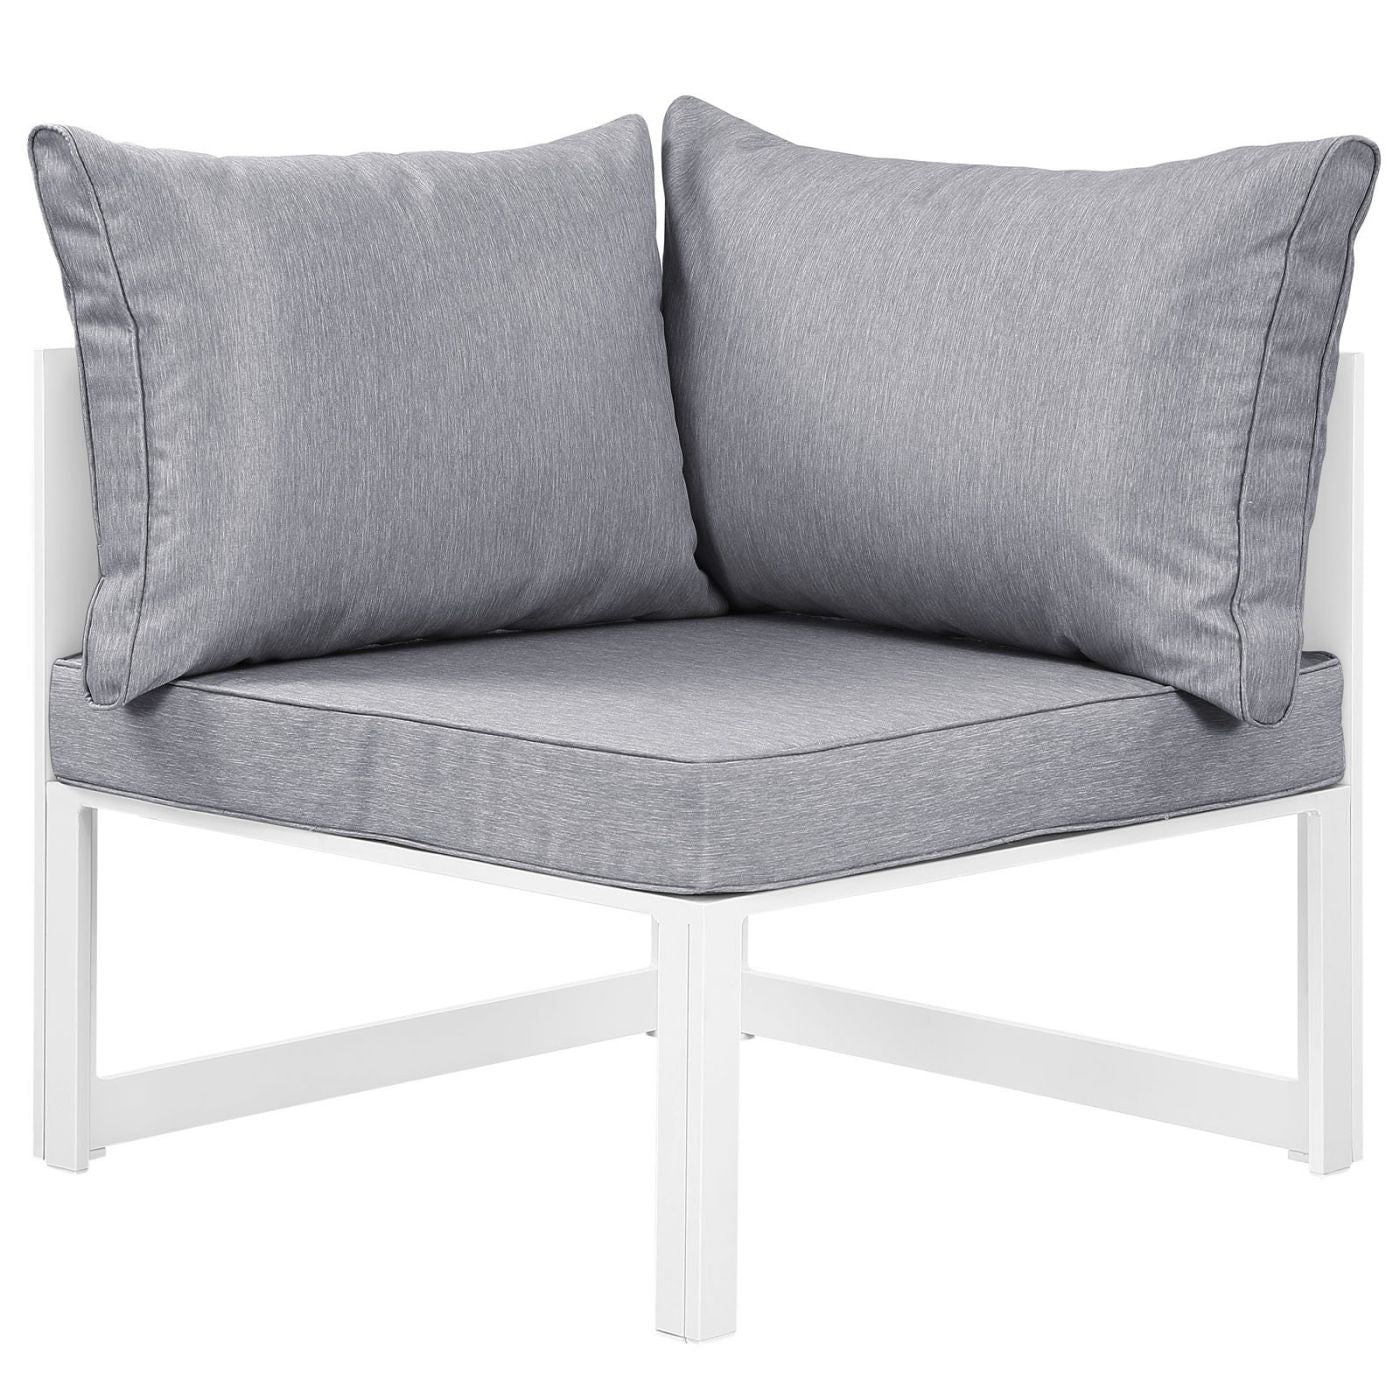 Pleasing Modway Outdoor Modular Sofas On Sale Eei 1518 Whi Gry Fortuna Corner Outdoor Patio Armchair Only Only 271 05 At Contemporary Furniture Warehouse Gmtry Best Dining Table And Chair Ideas Images Gmtryco